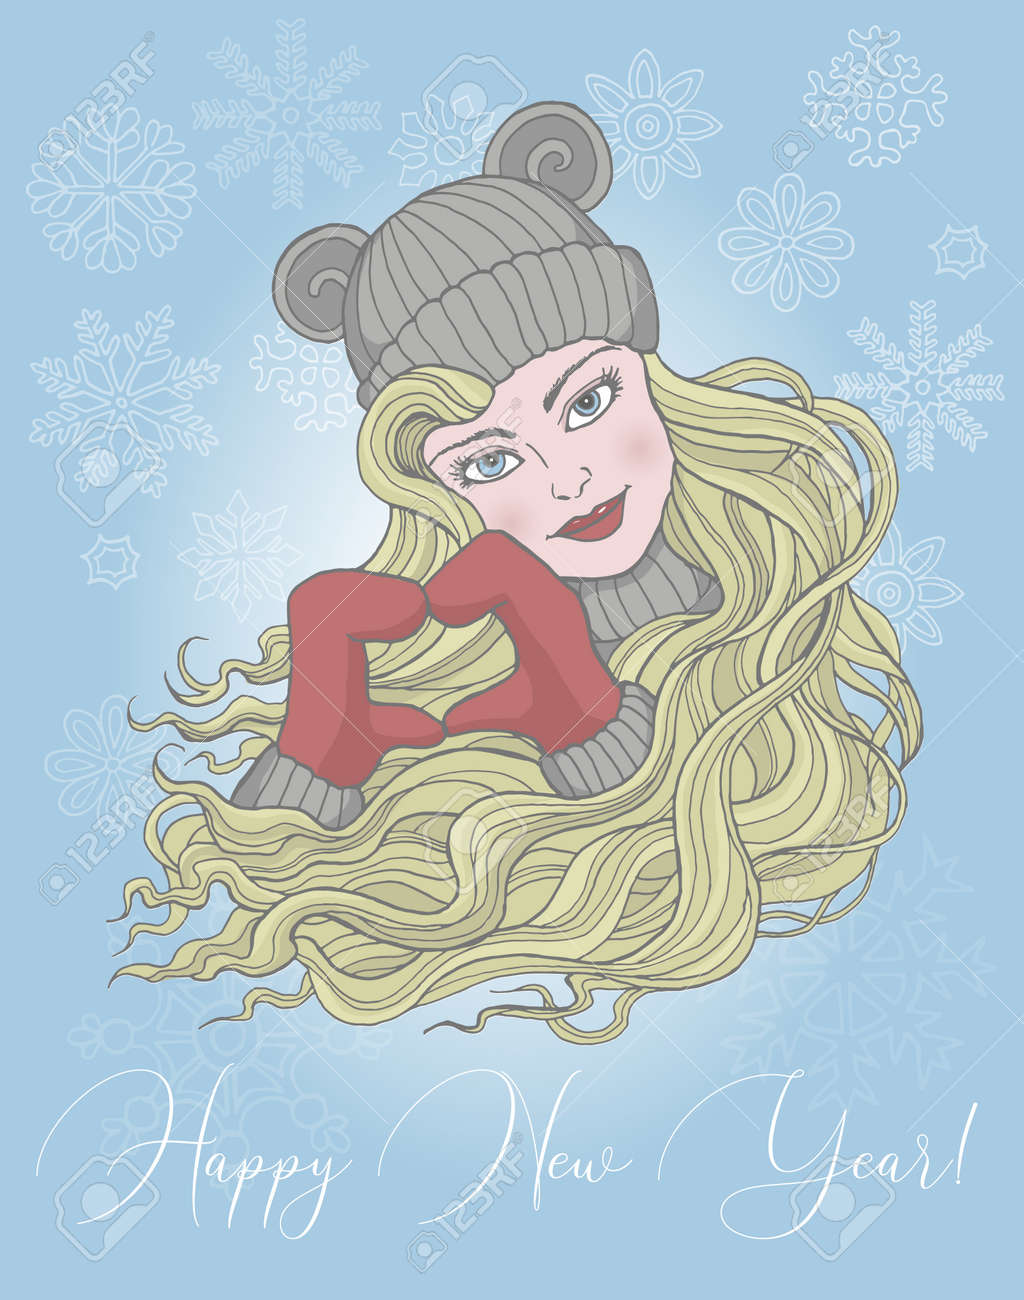 Christmas and New Year greeting card with happy girl in mittens showing heart symbol. Vector hand drawn doodle illustration, seasonal background, design element for banners, invitations - 157028542